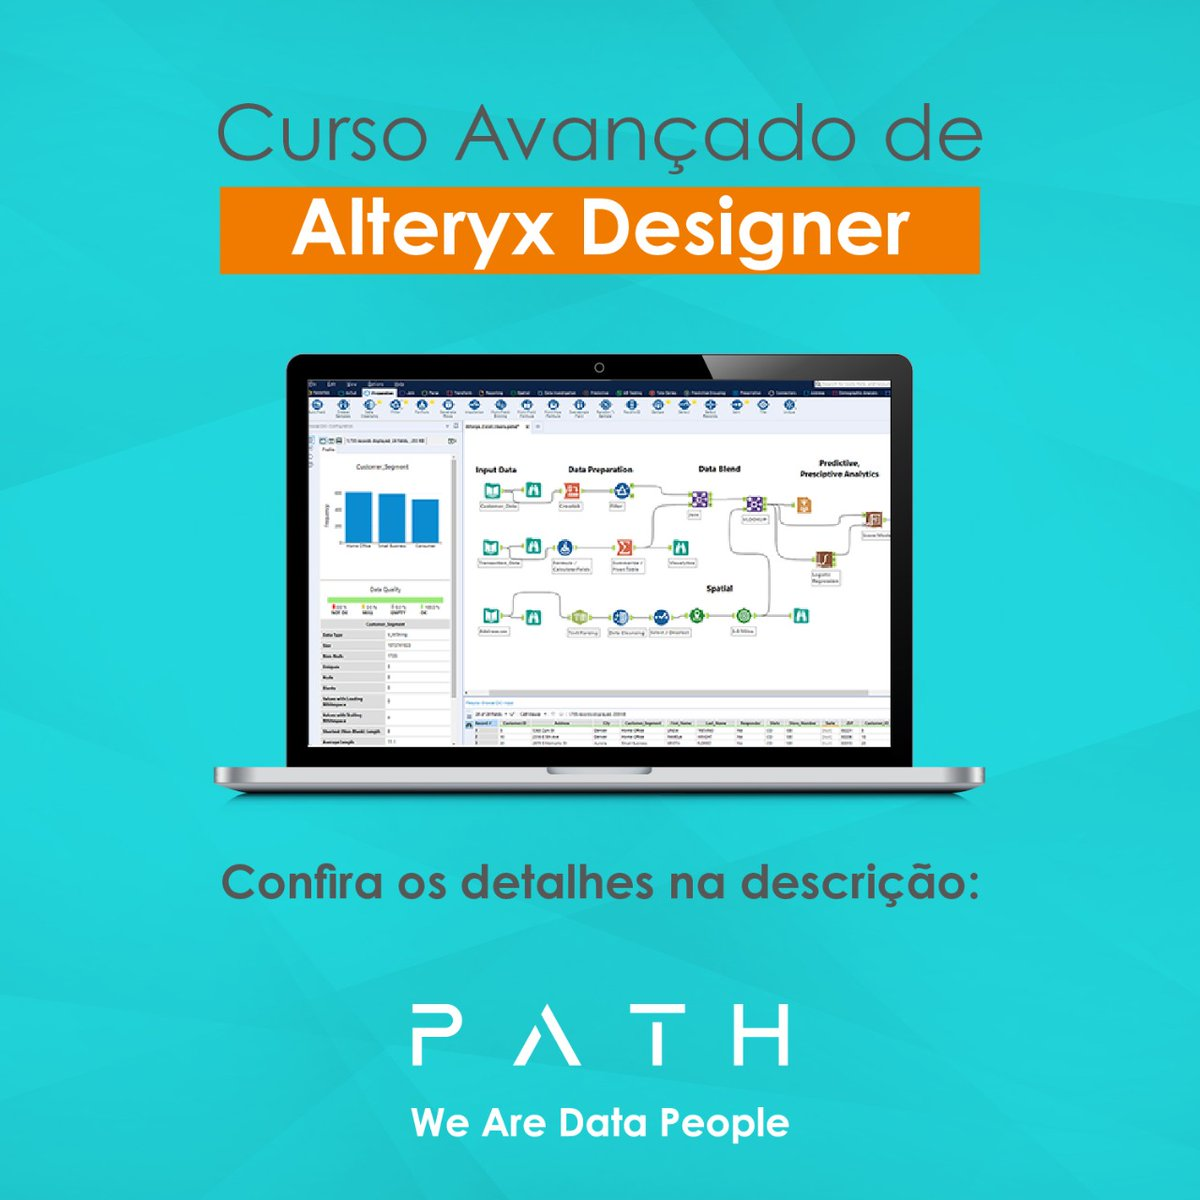 Este curso foi desenvolvido para usuários intermediários do @Alteryx.   Confira nossa página de treinamentos Alteryx Designer: https://t.co/n9TRsoXGYD  #alteryx #TogetherWeSolve #AlteryxAnalytics #JuntosSolucionamos #path #pathdatafan #pathalteryx https://t.co/xk7GYtQPc7